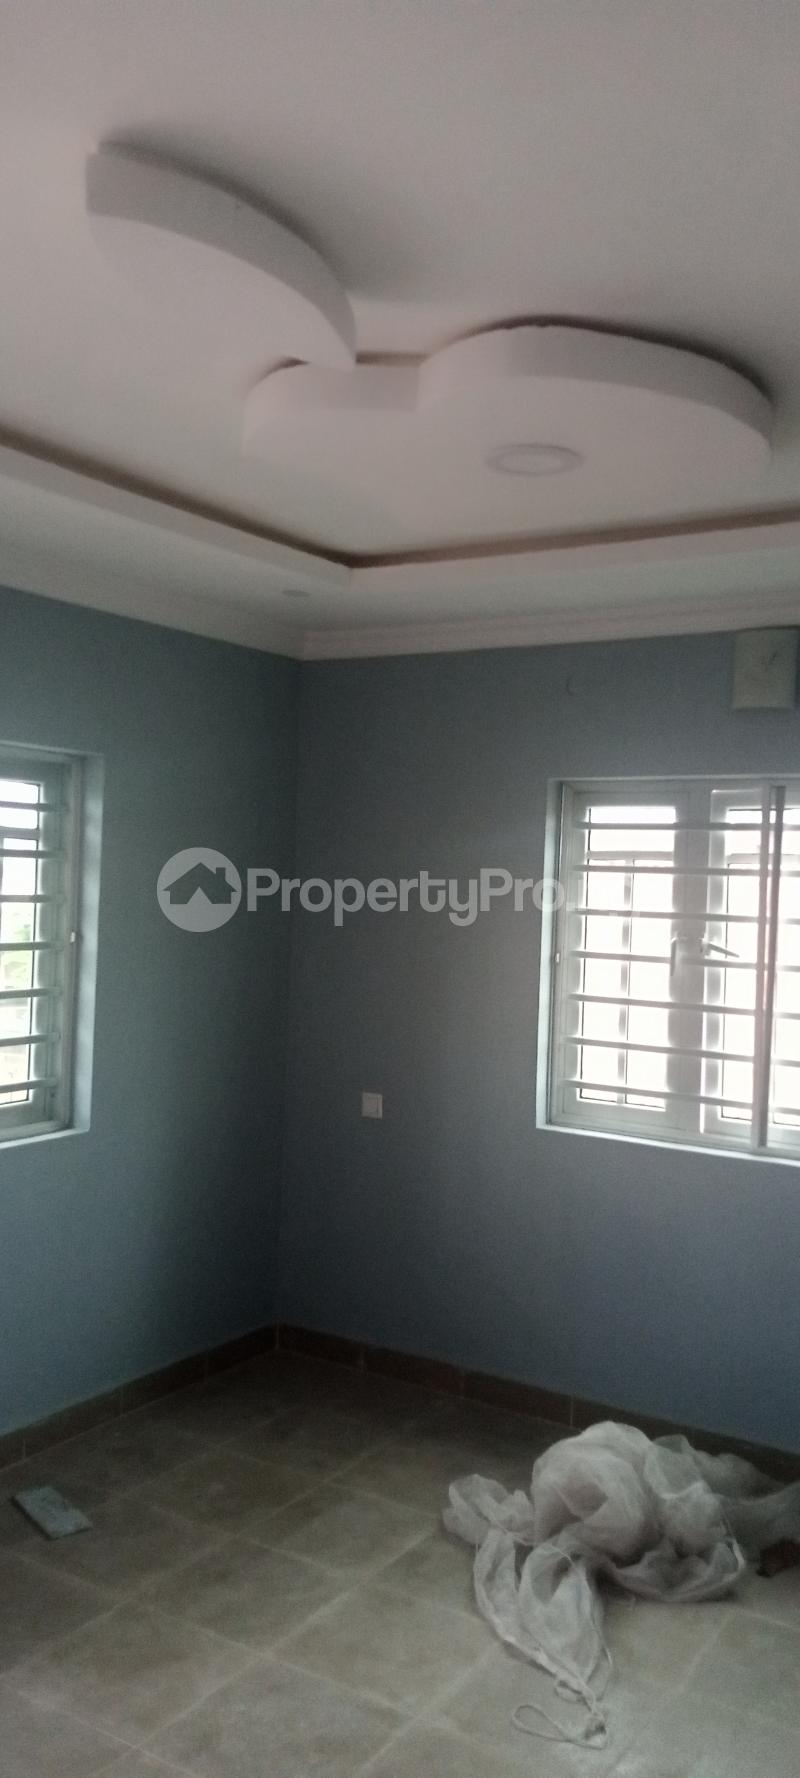 3 bedroom Flat / Apartment for rent A close Oke-Ira Ogba Lagos - 2